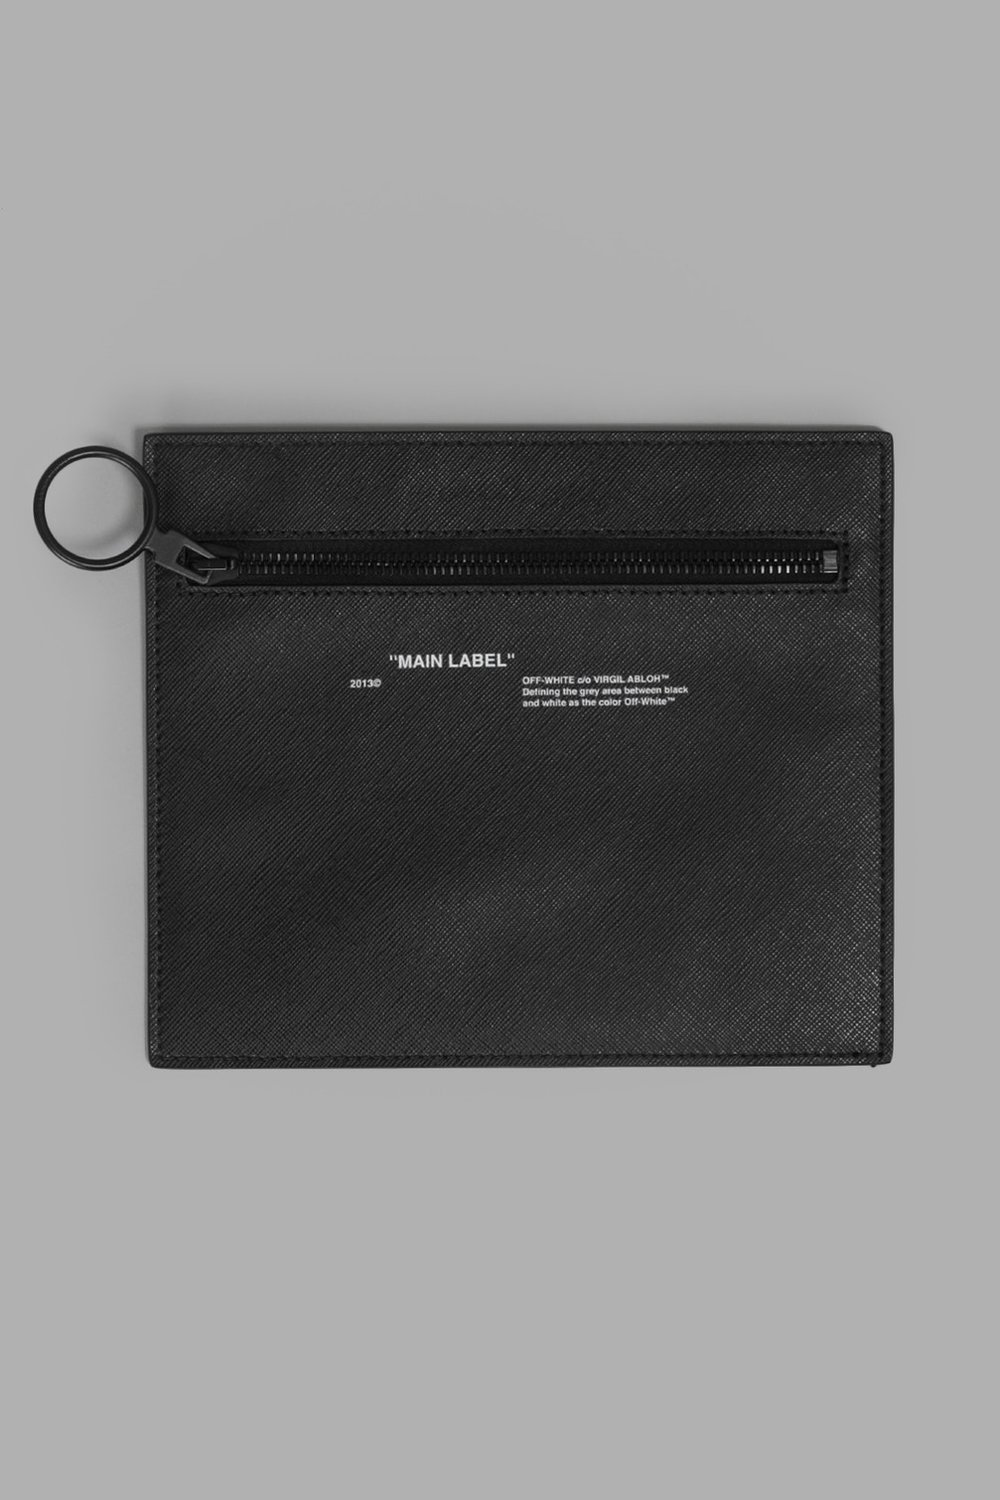 CNK-Off-White-Sculpture-Bag4.jpg